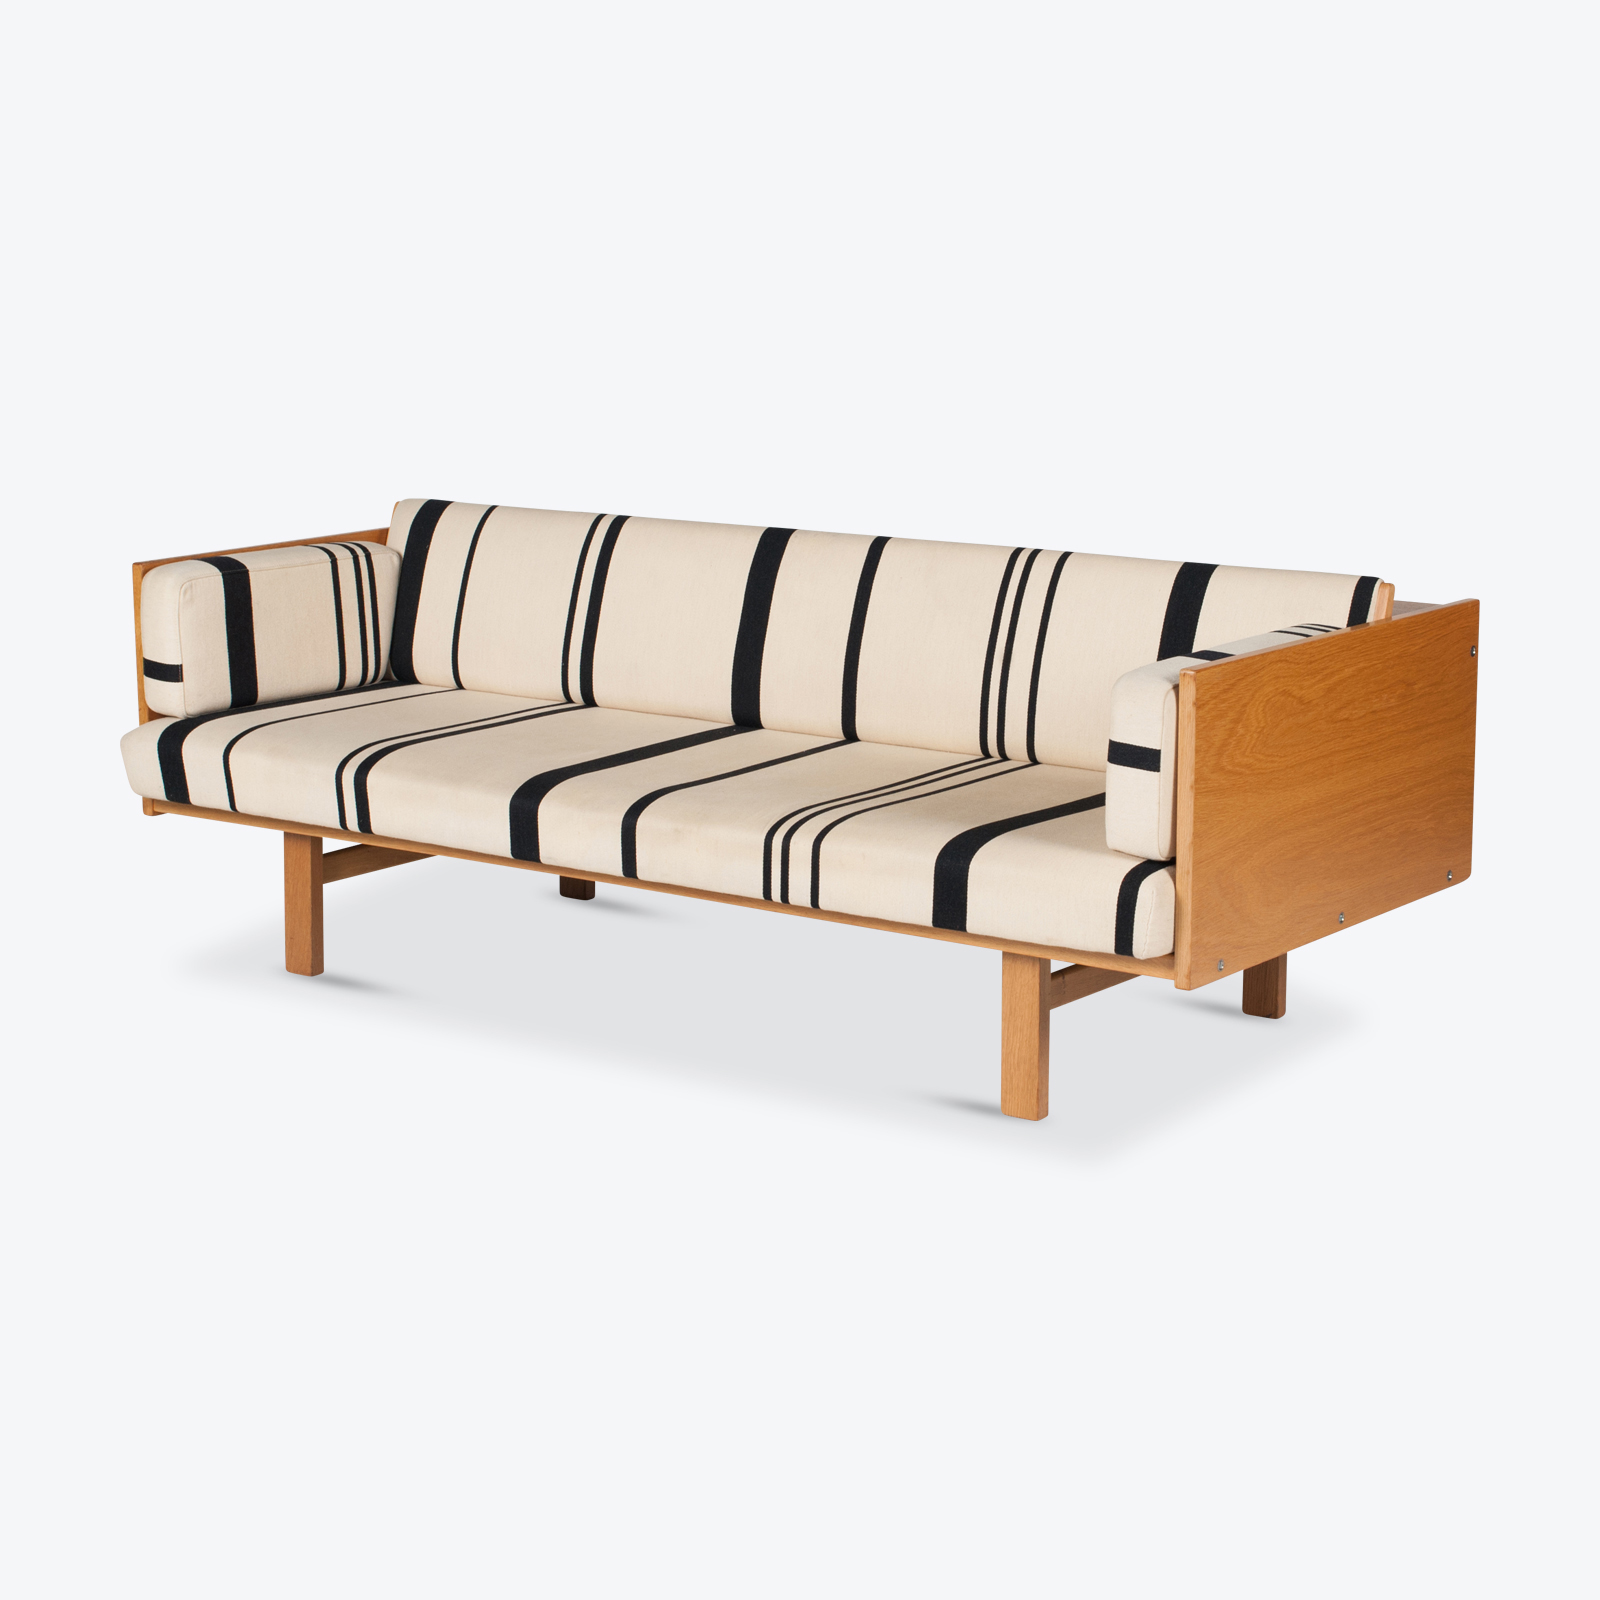 Ge 259 Daybed In Oak With Striped Upholstery By Hans Wegner For Getama, 1960s, Denmark Hero 1